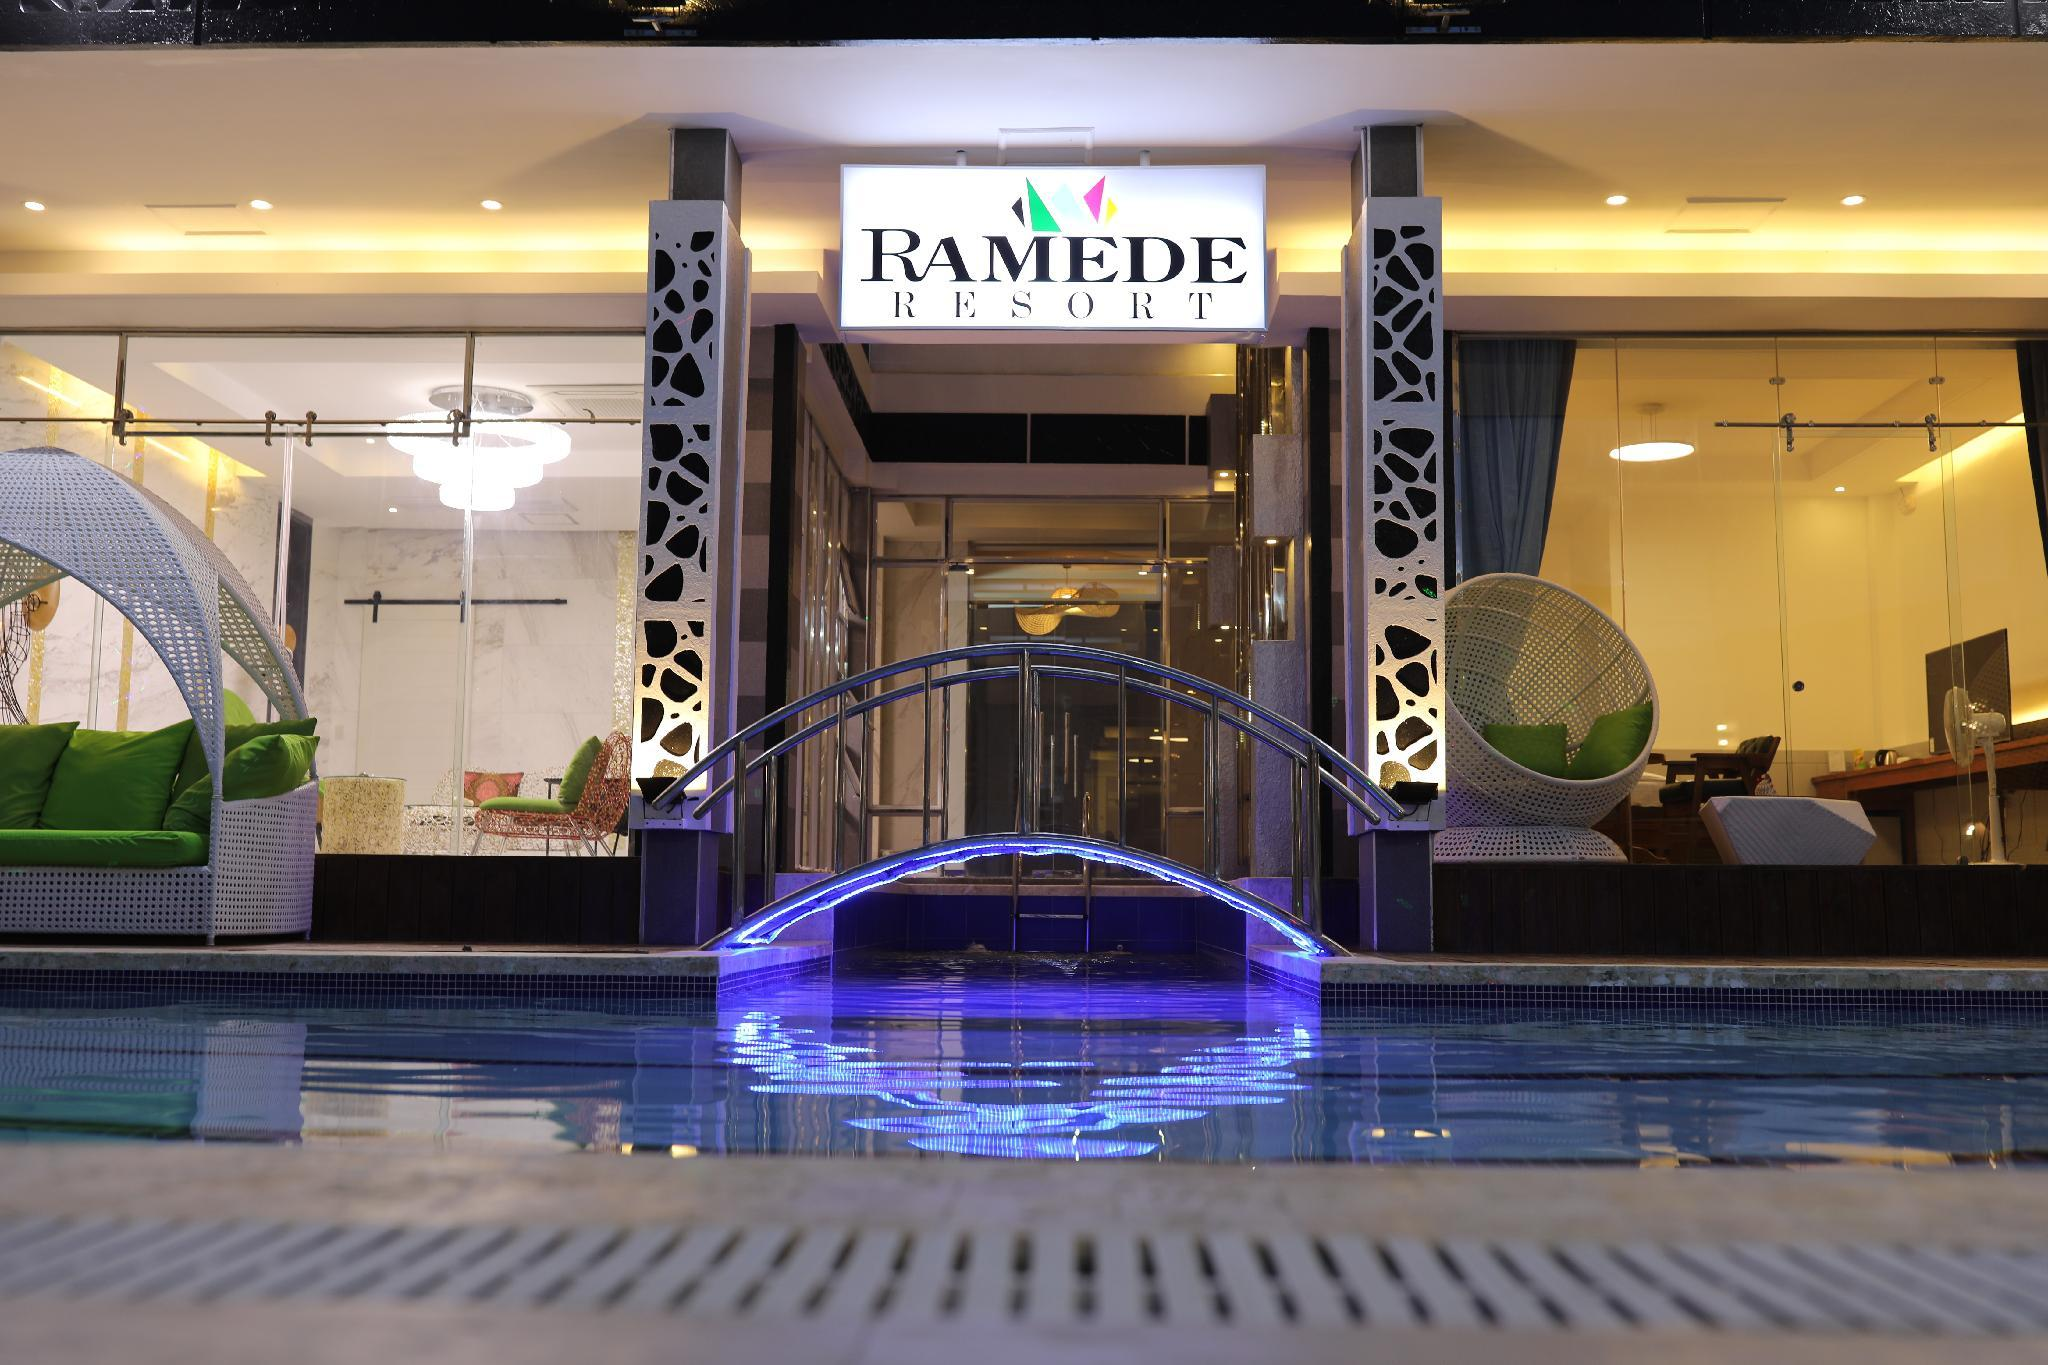 Ramede Resort, Lapu-Lapu City